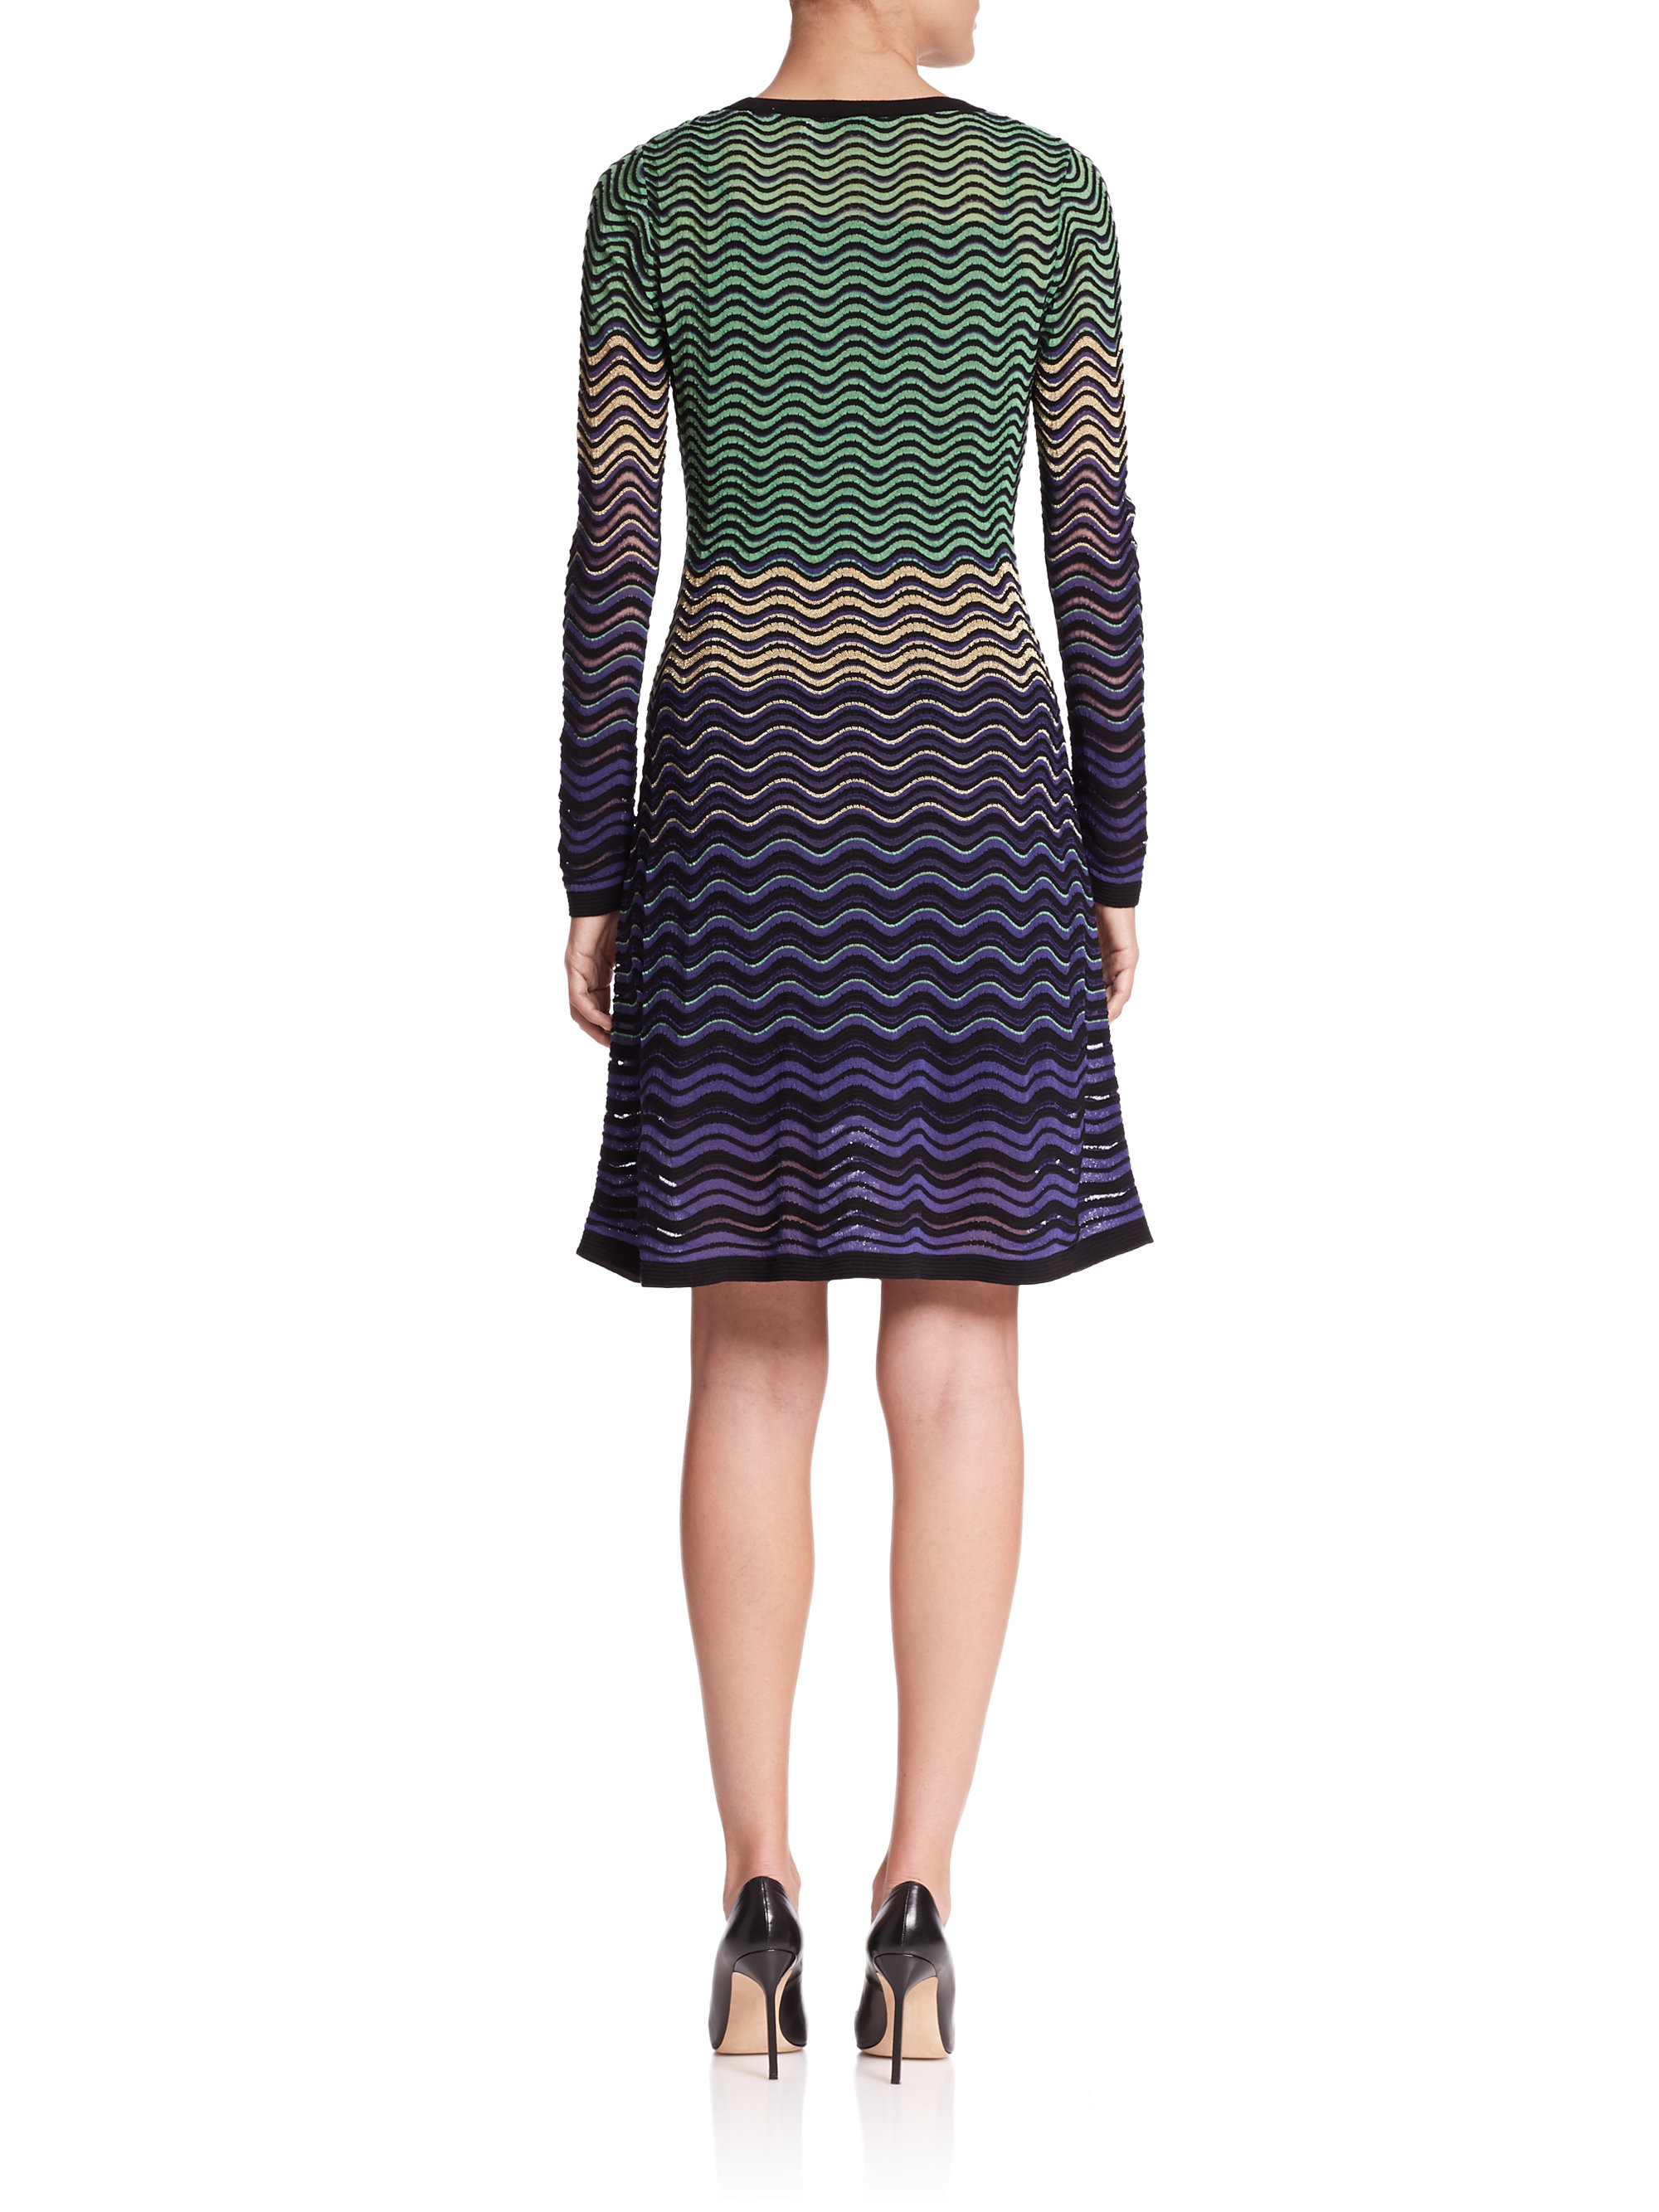 Violet Dress Knitting Pattern : M missoni Metallic Ripple-pattern Knit Dress in Purple Lyst